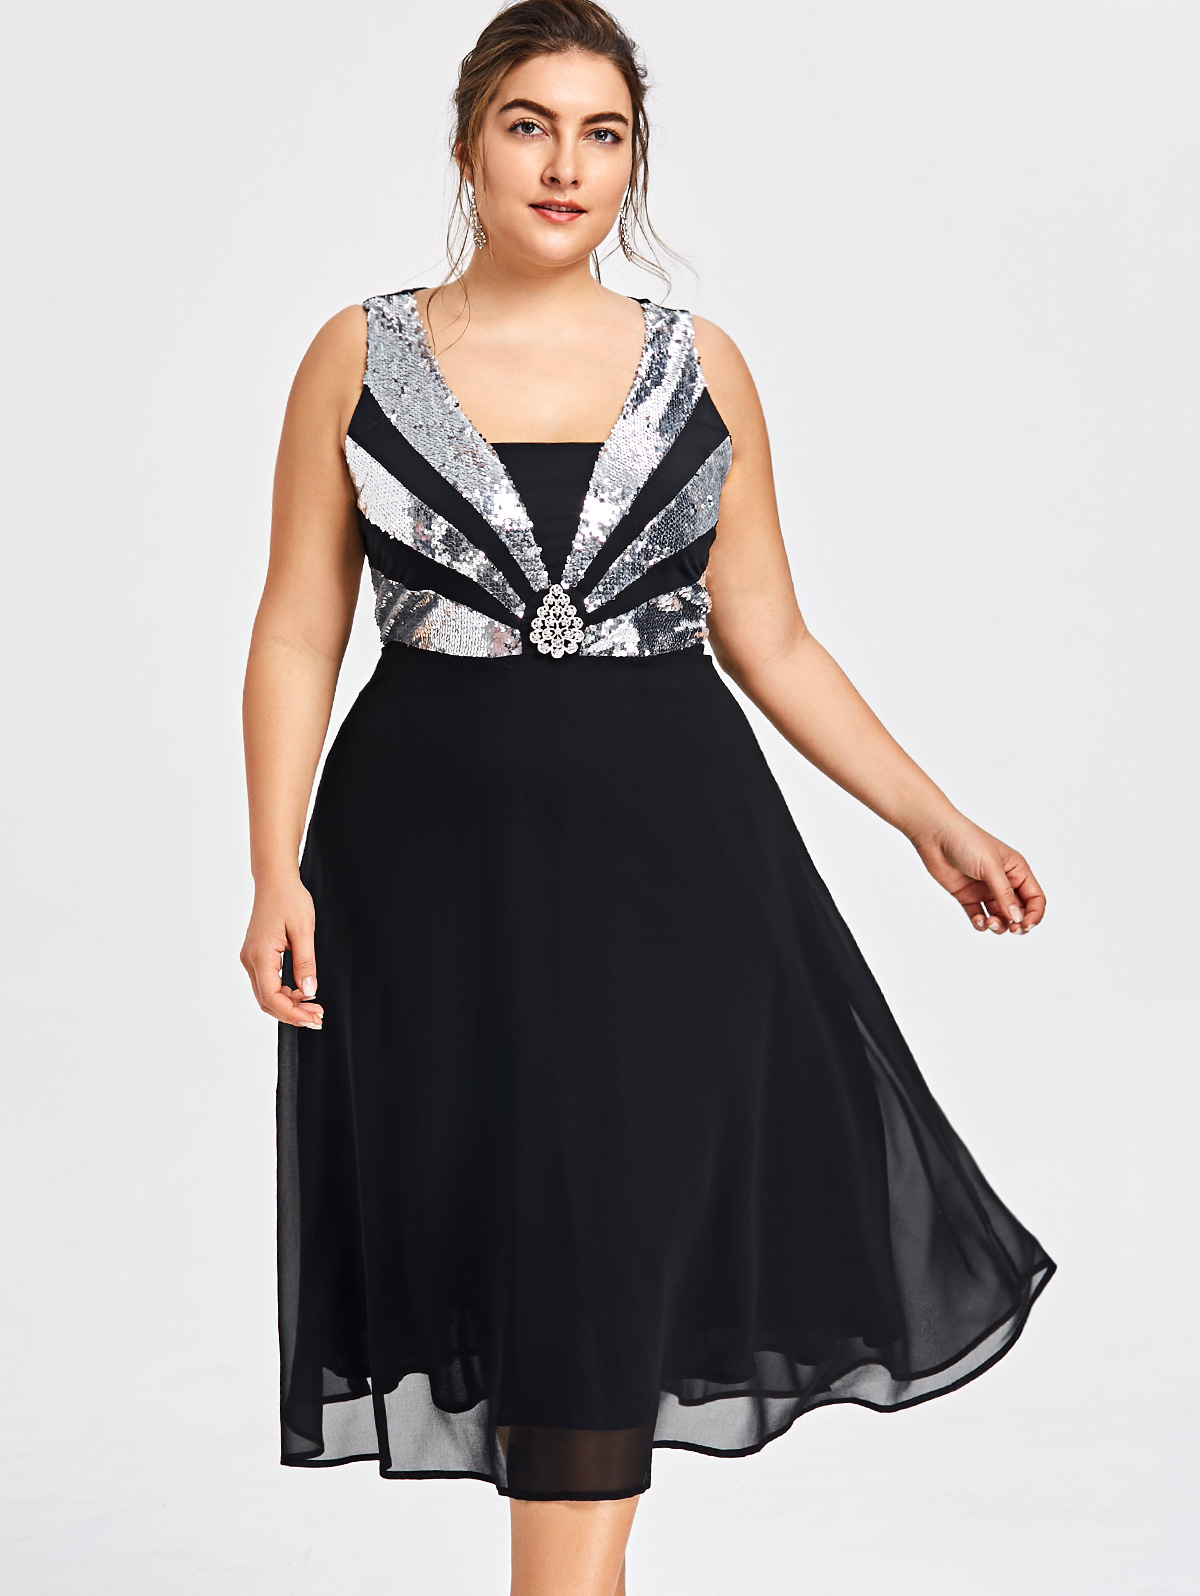 a8199c5aede6 Detail Feedback Questions about Gamiss Women Fashions Plus Size 5XL  Sequined Sparkly Glittery Flowy Party Dress Elegant Sleeveless A Line  Chiffon Dress ...